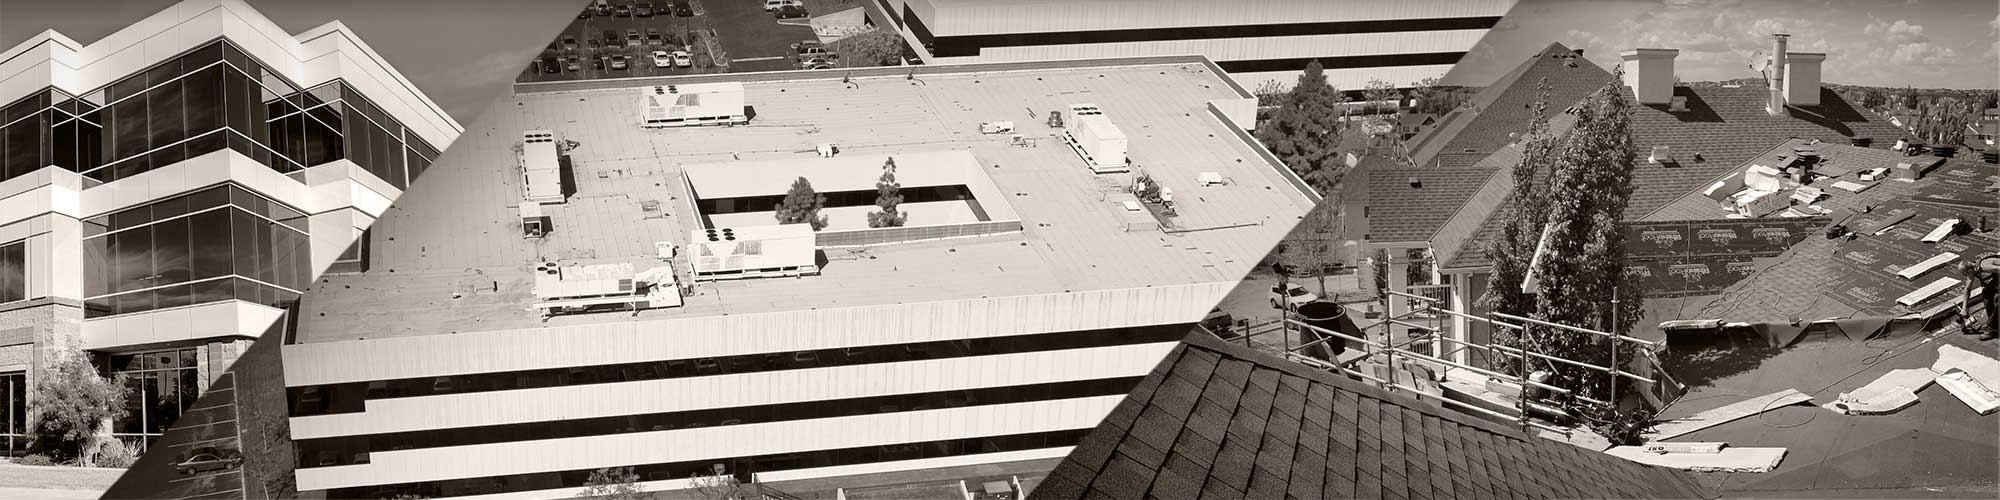 Collection of commercial roofing projects